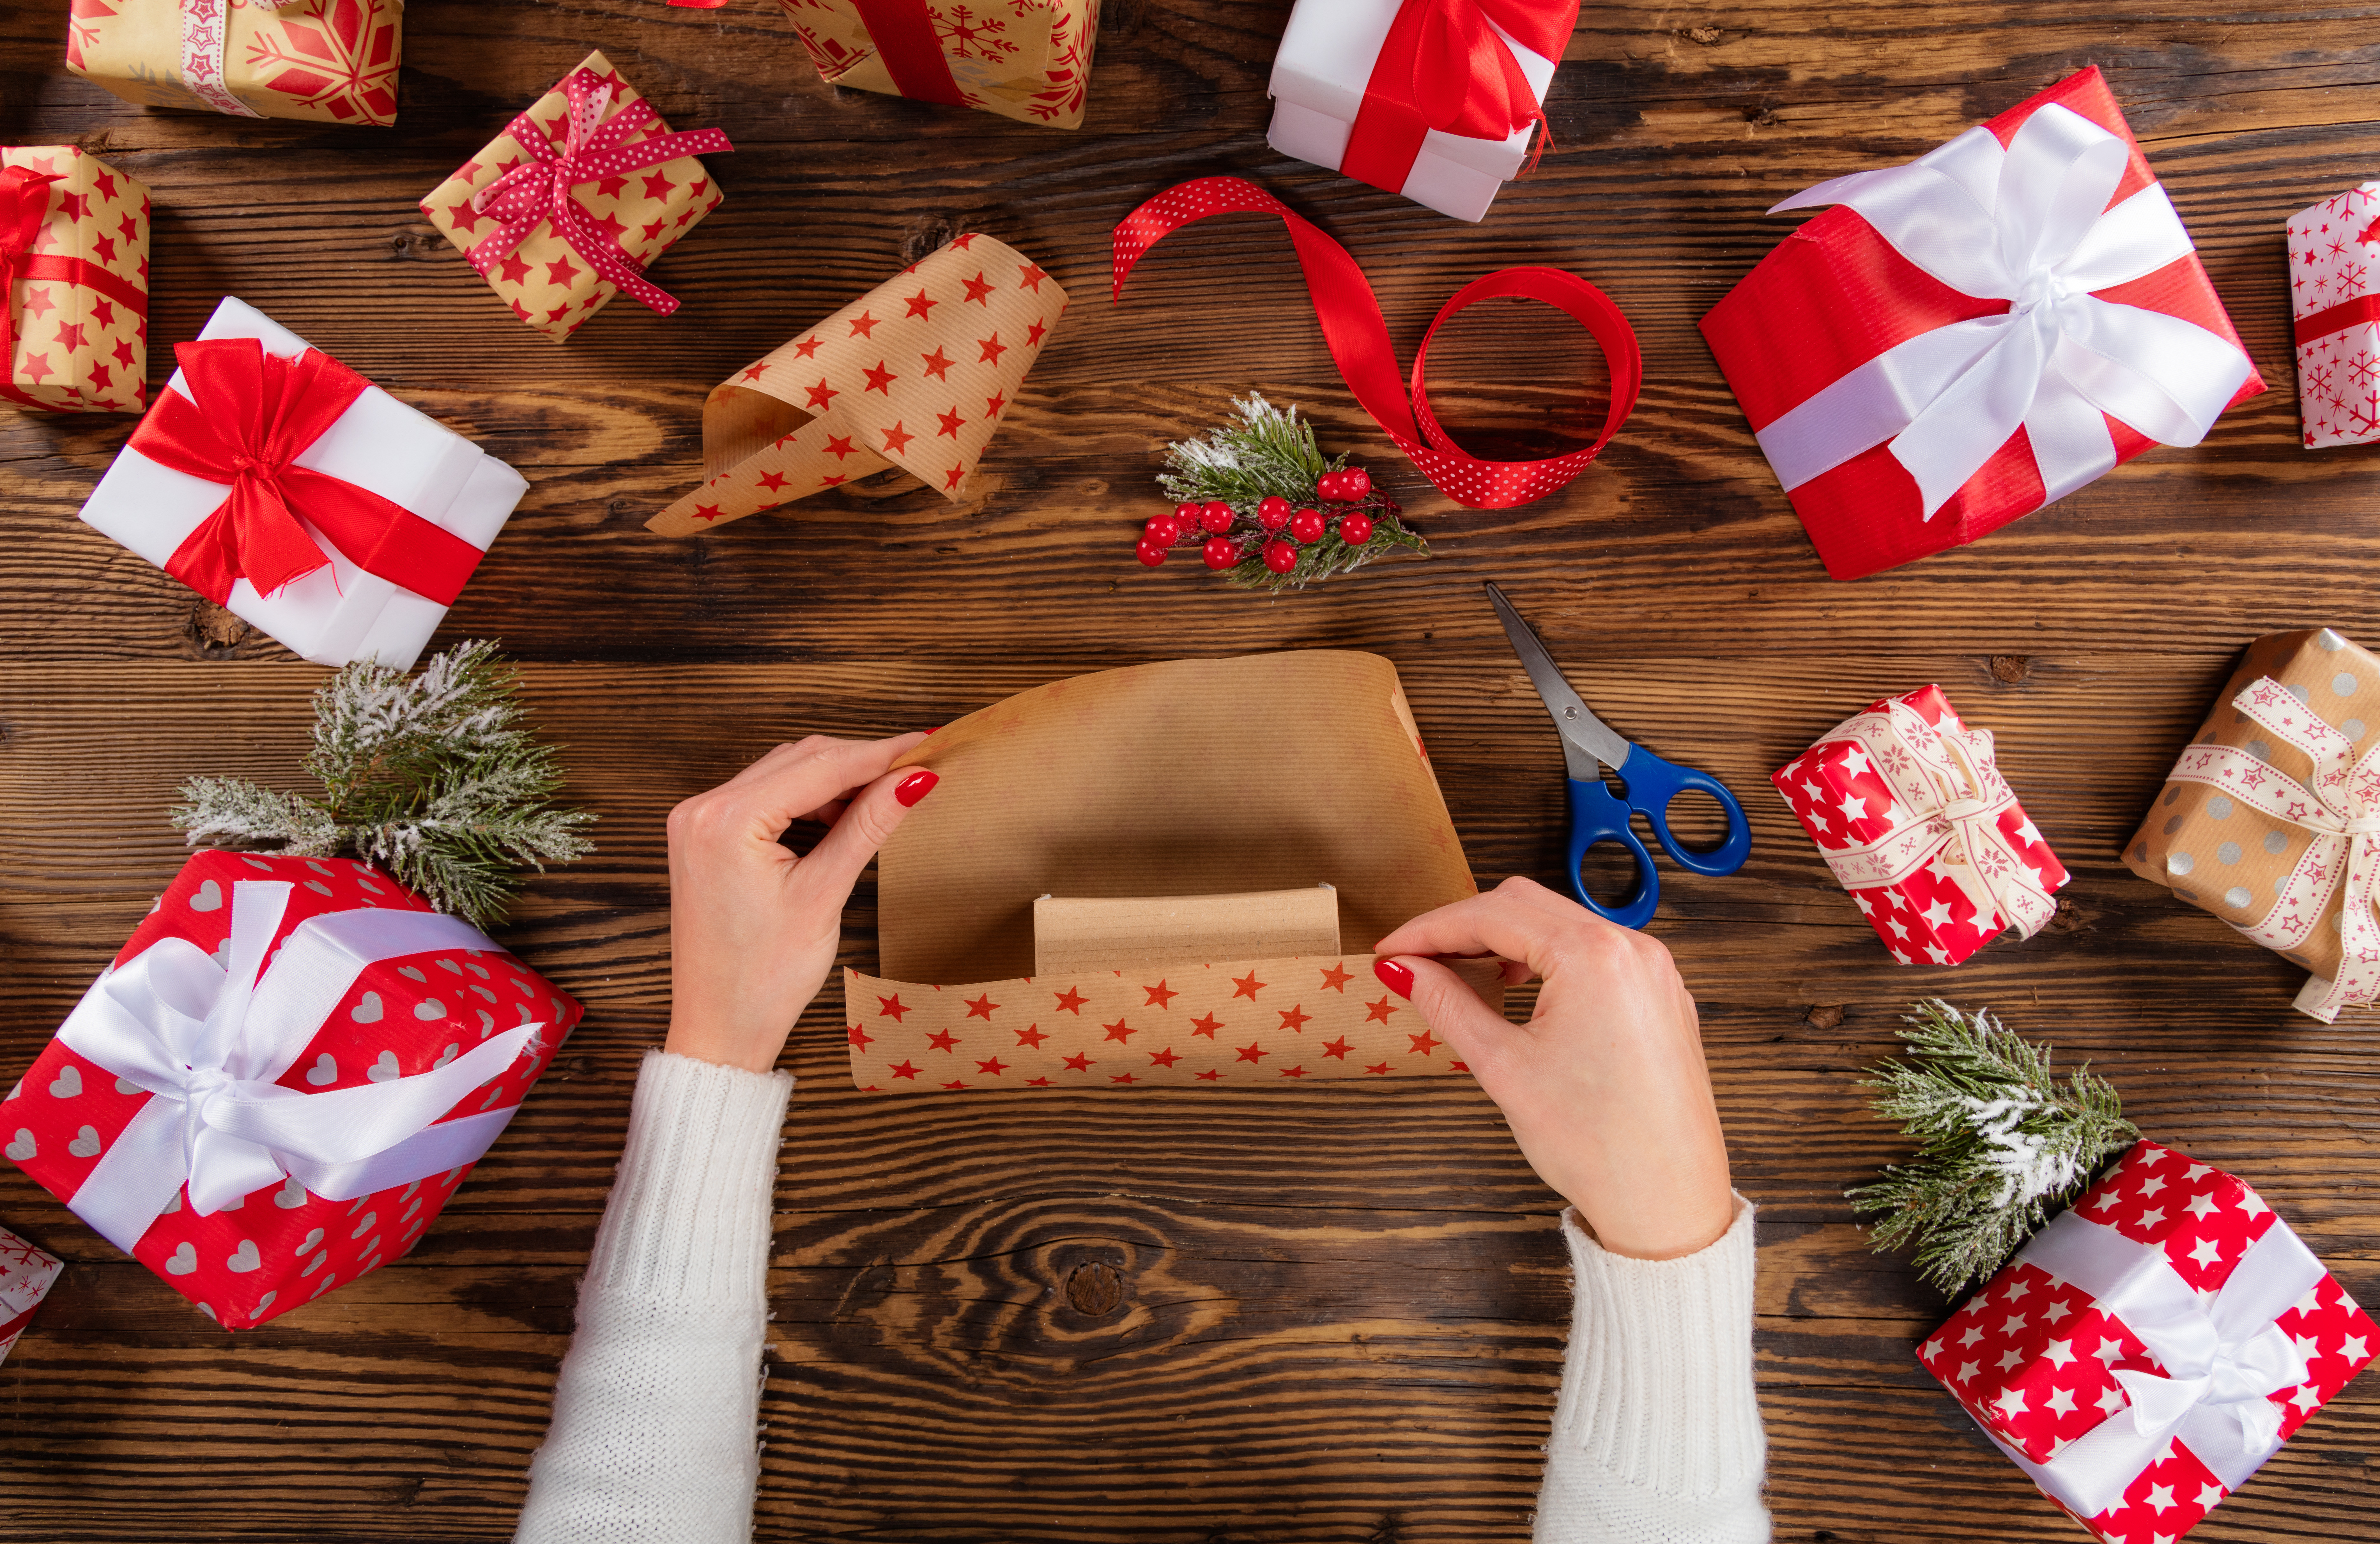 Post-holiday Recycling: What to Do with Gift Wrap and Greeting Cards